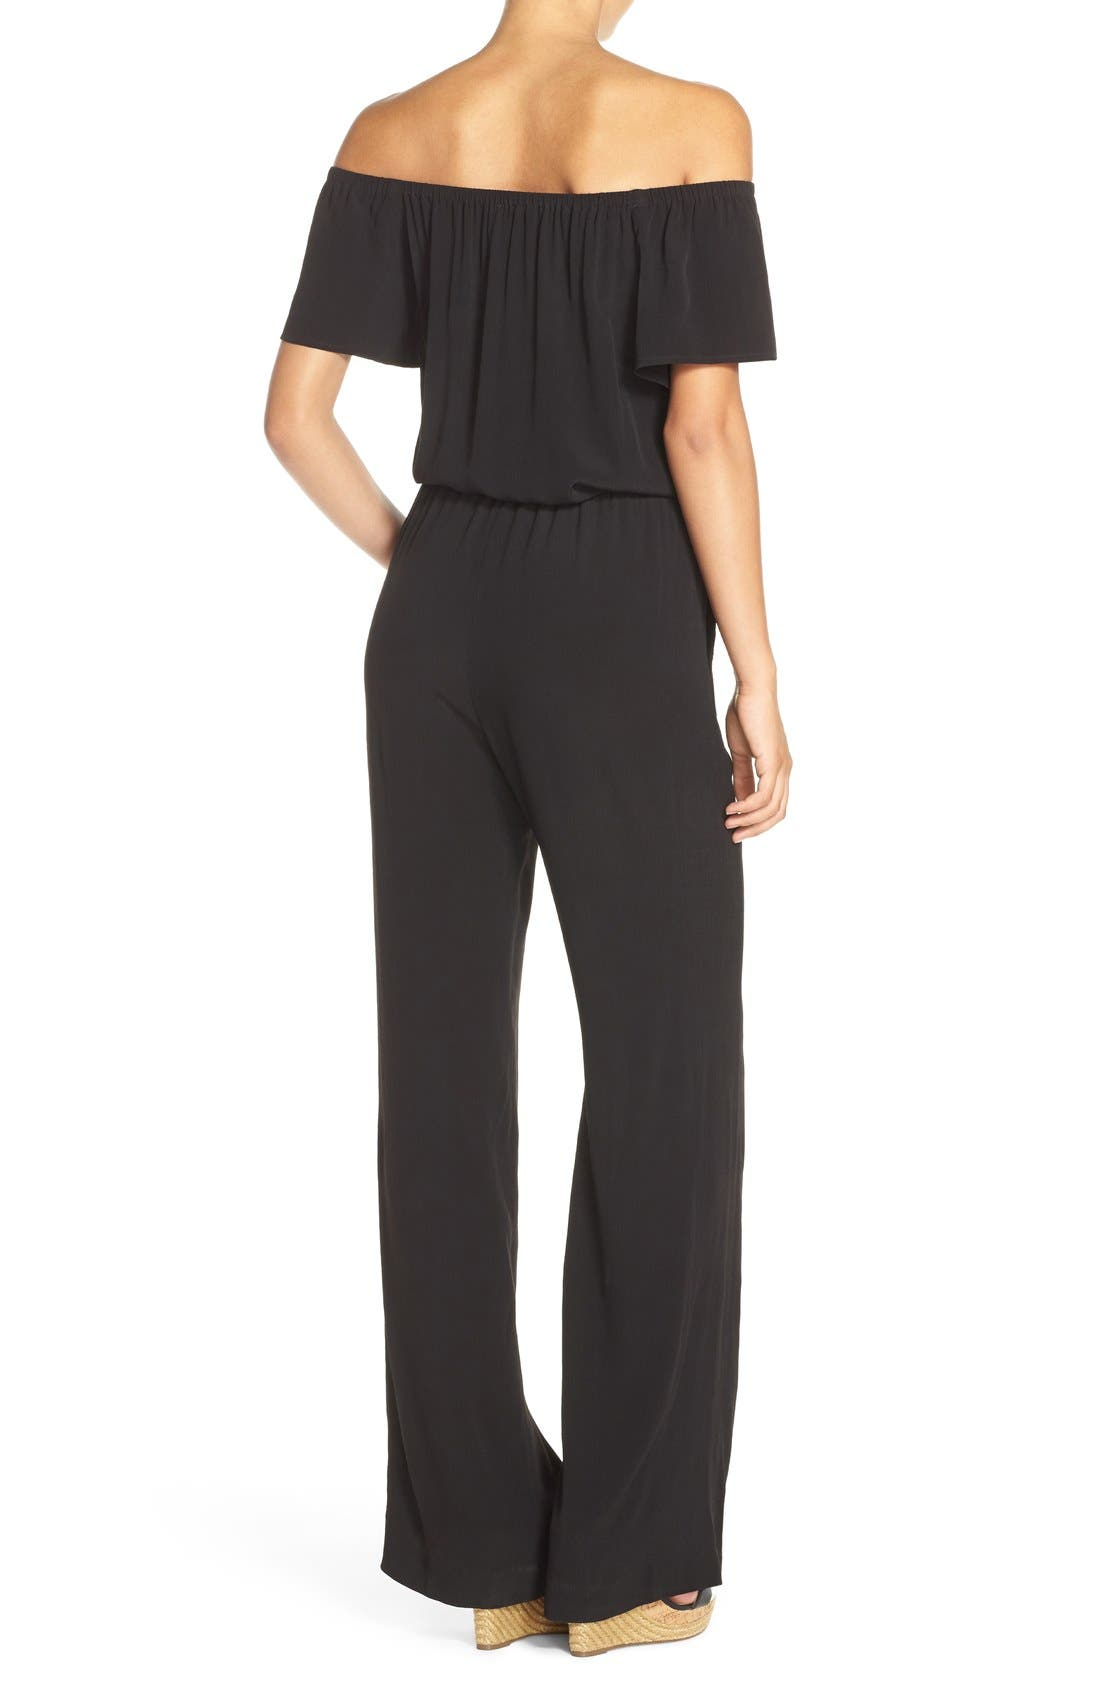 CHARLES HENRY, Off the Shoulder Wide Leg Jumpsuit, Alternate thumbnail 6, color, BLACK